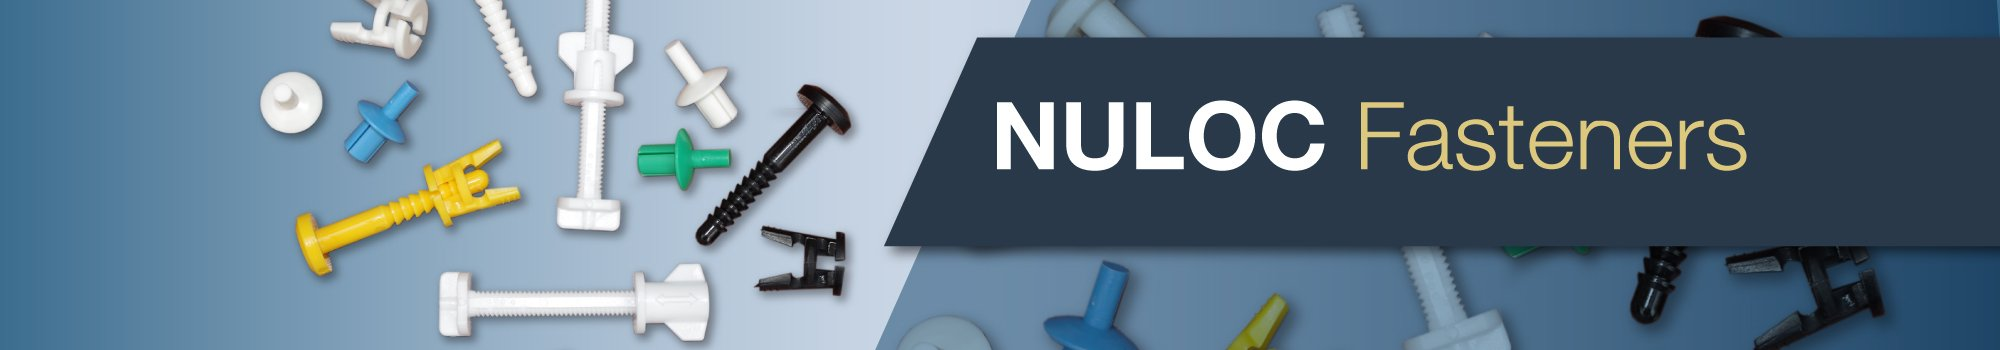 Nuloc Fasteners-Designovations